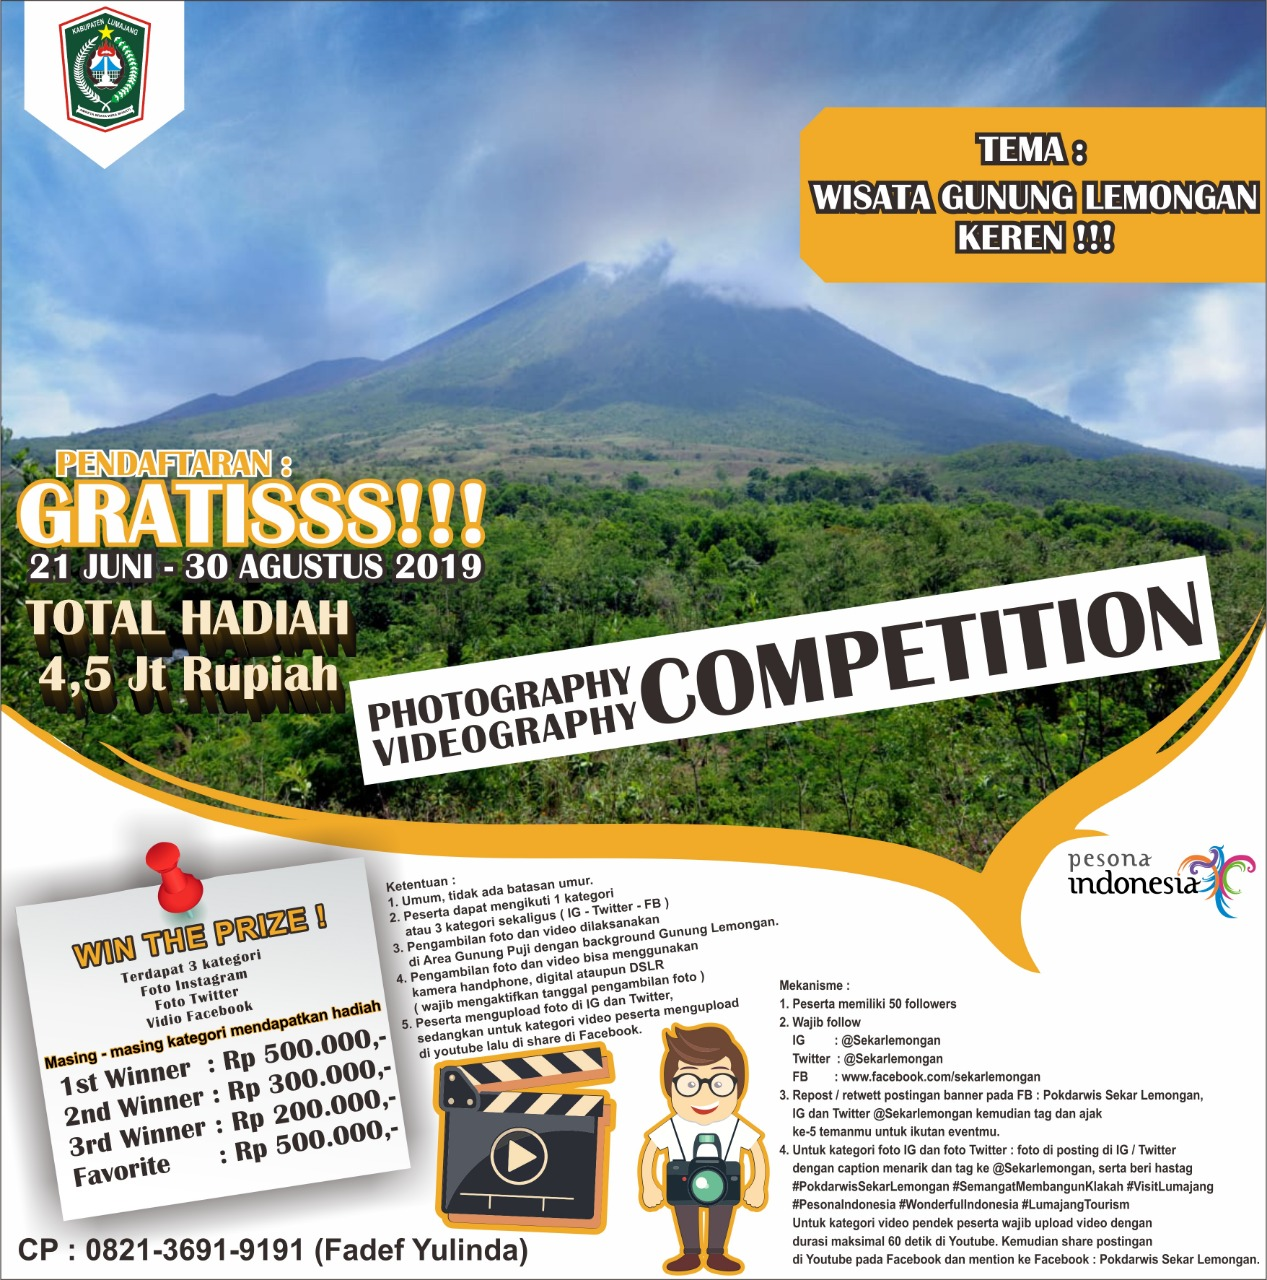 LOMBAH FOTHOGRAPY DAN VIDEOGRAPY COMPETITION